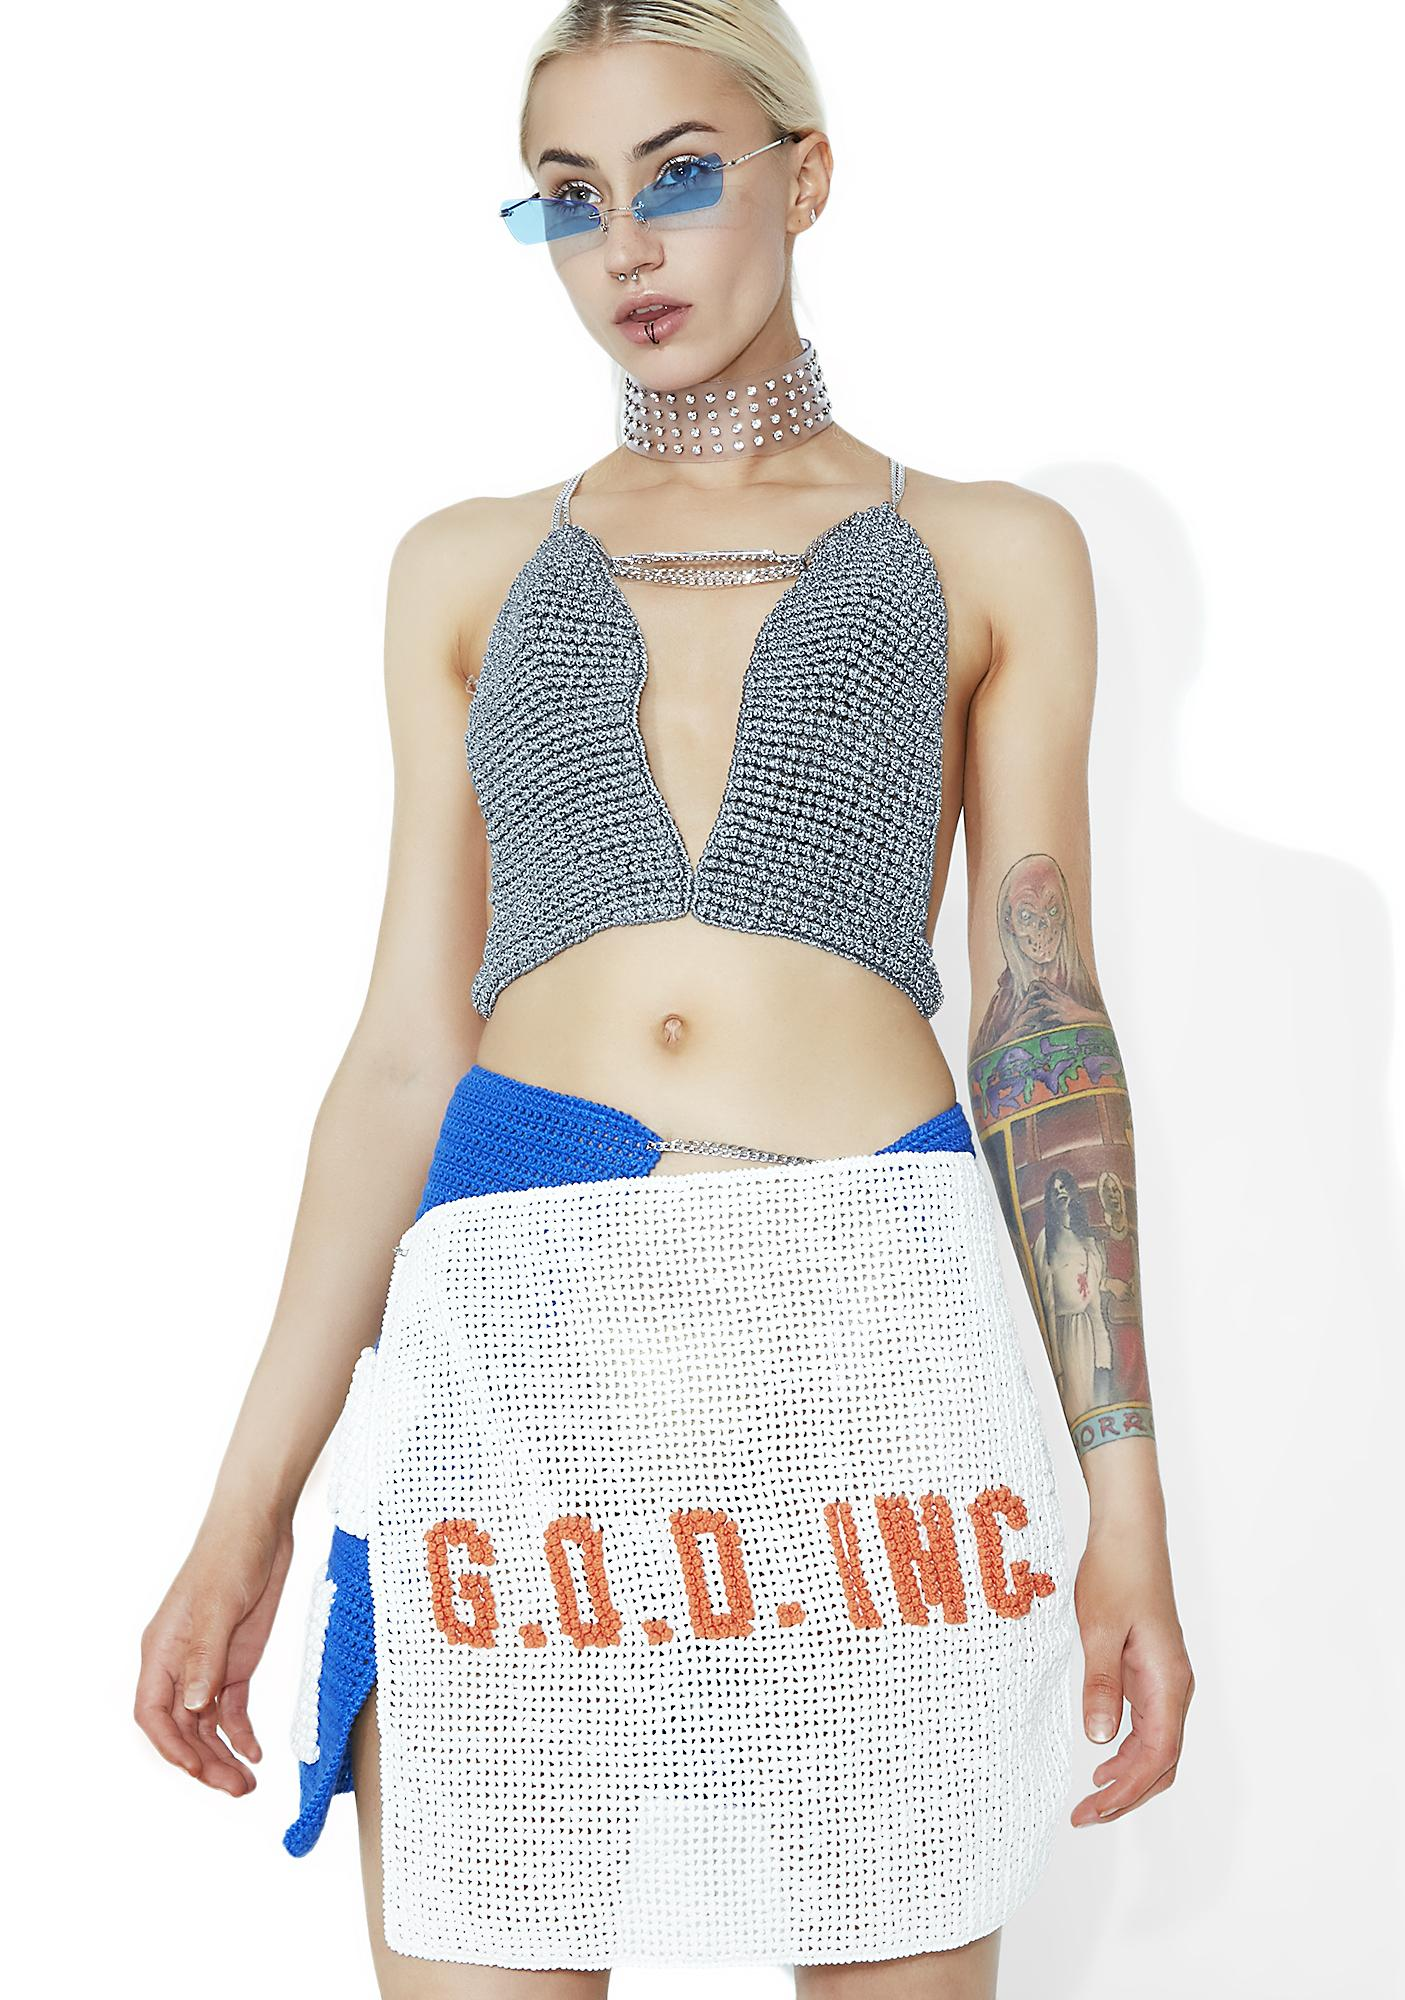 Maria ke Fisherman Made In Heaven God Skirt